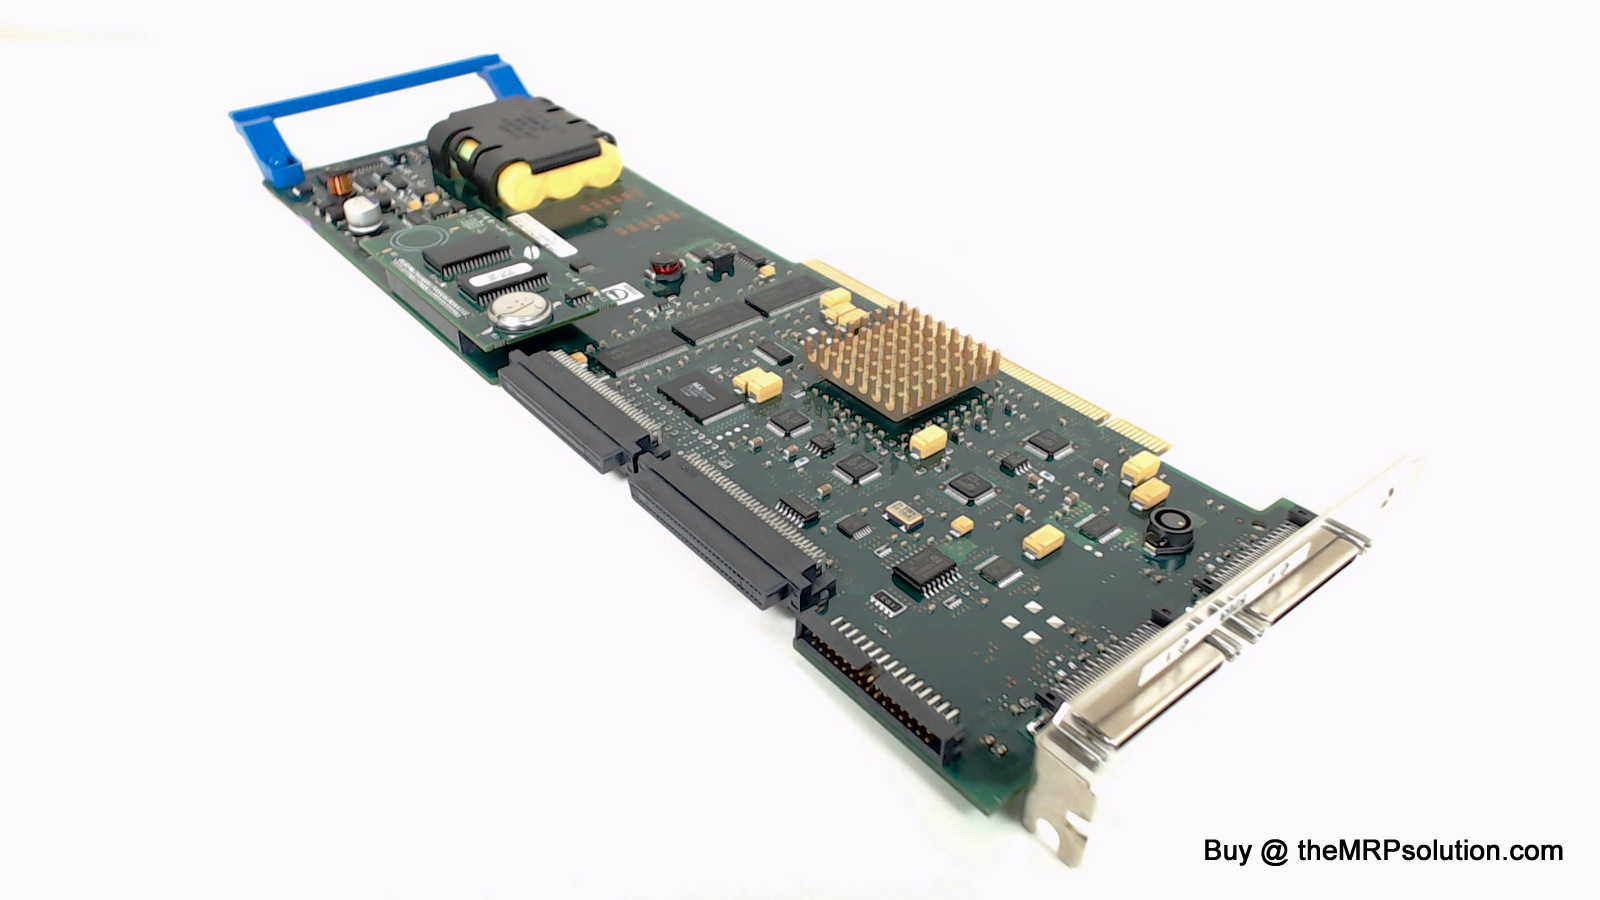 IBM 97P6516 PCI-X DUAL SCSI ADAPTER, 9406-800 Refurbished